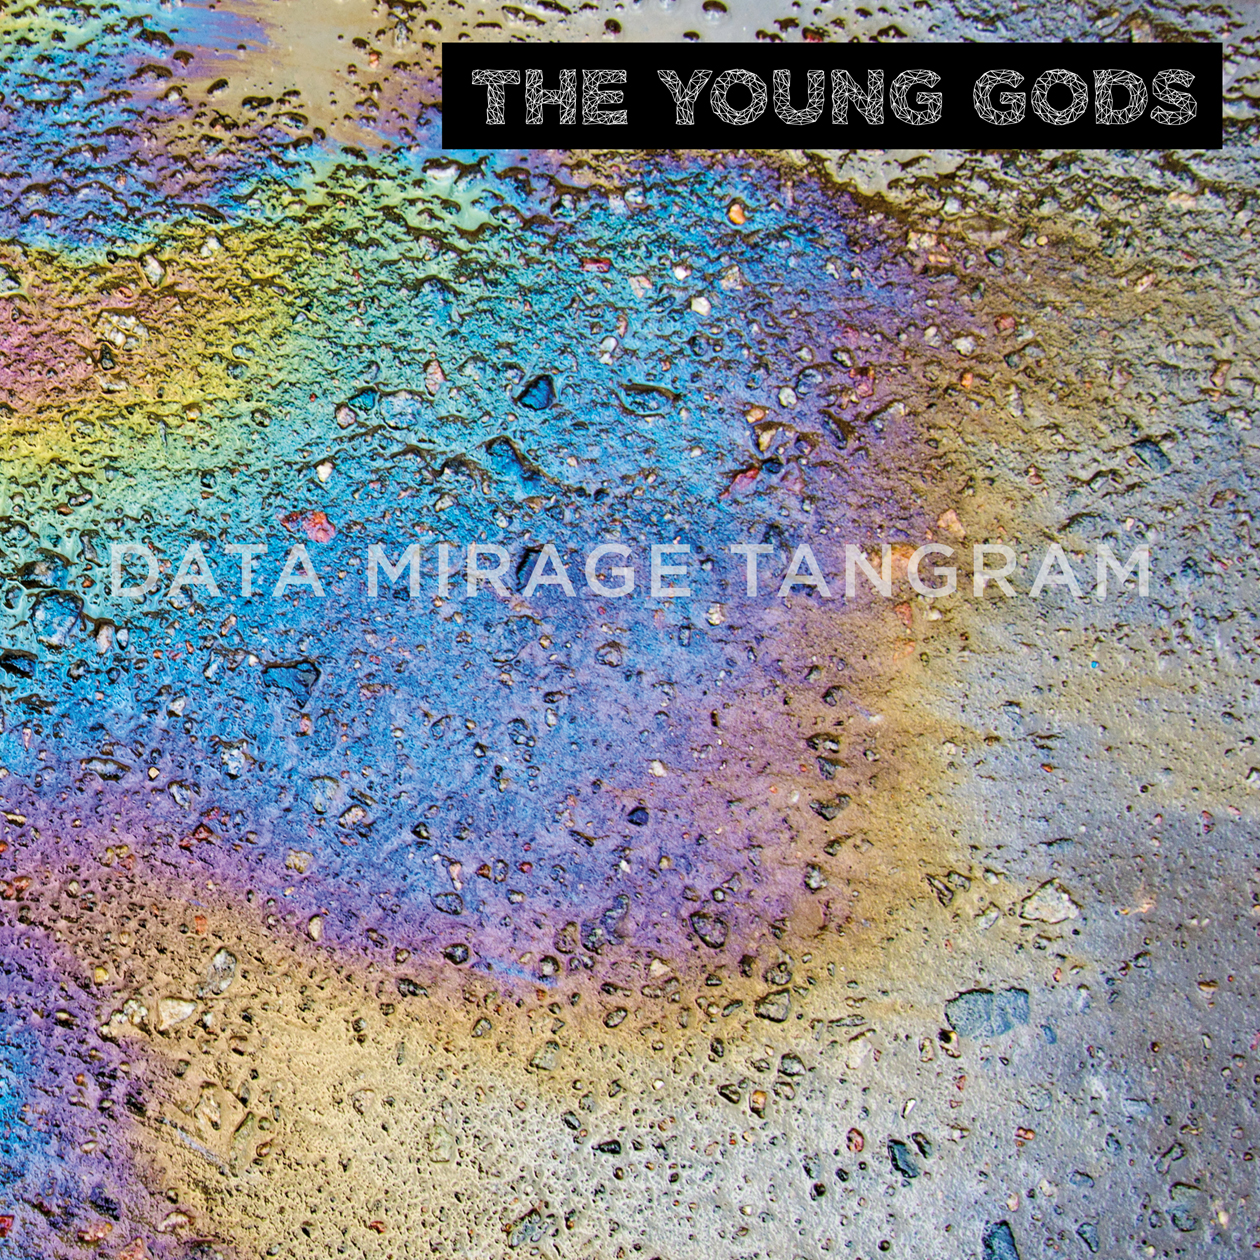 "THE YOUNG GODS ""Data mirage tangram"" CD"